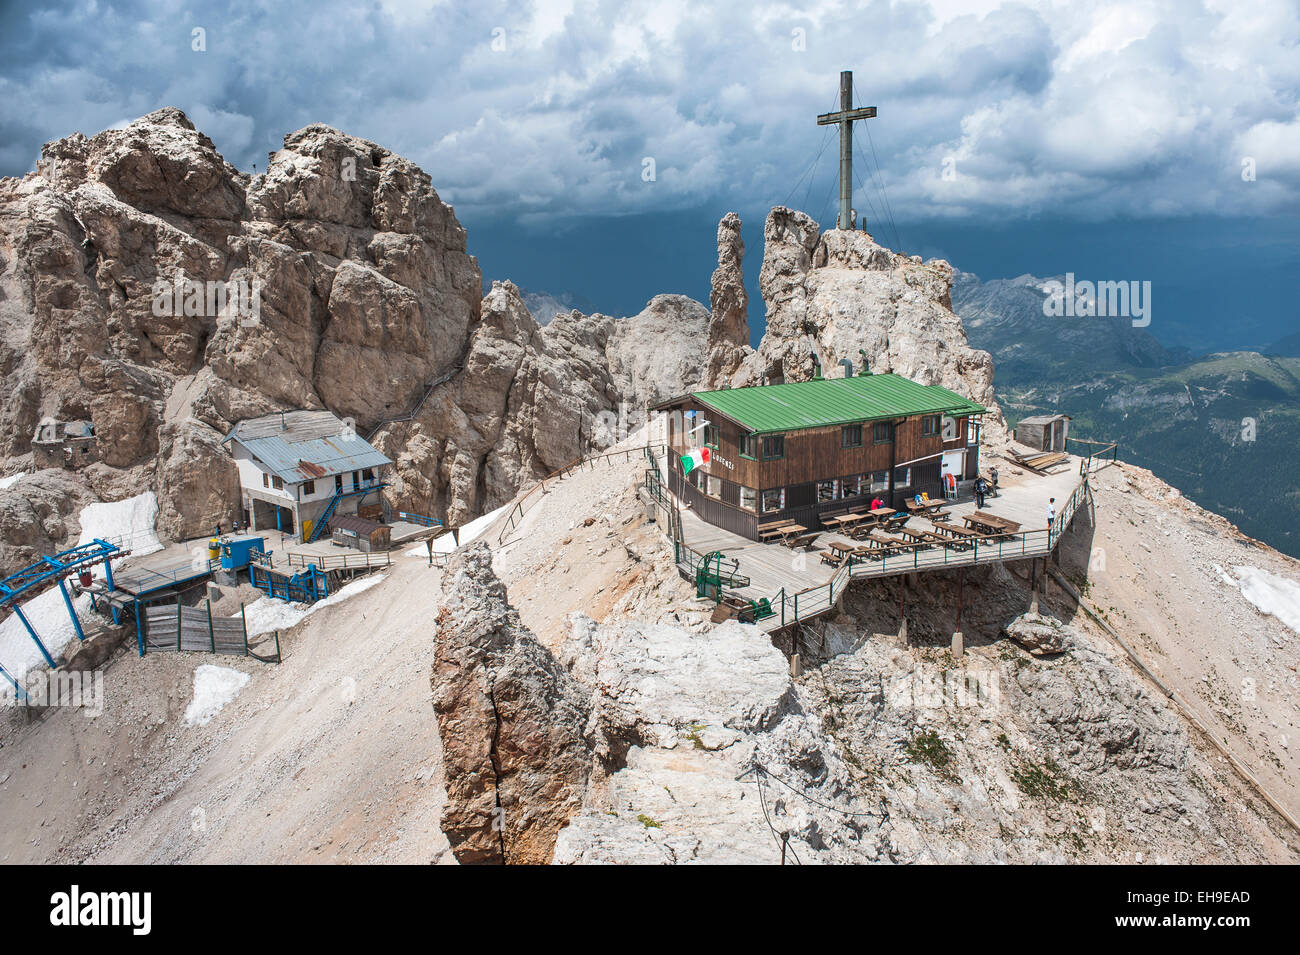 Lorenzihütte refuge, 2932 m, at the back the mountain station of the cable car, Rifugio Son Forca, Cristallo - Stock Image